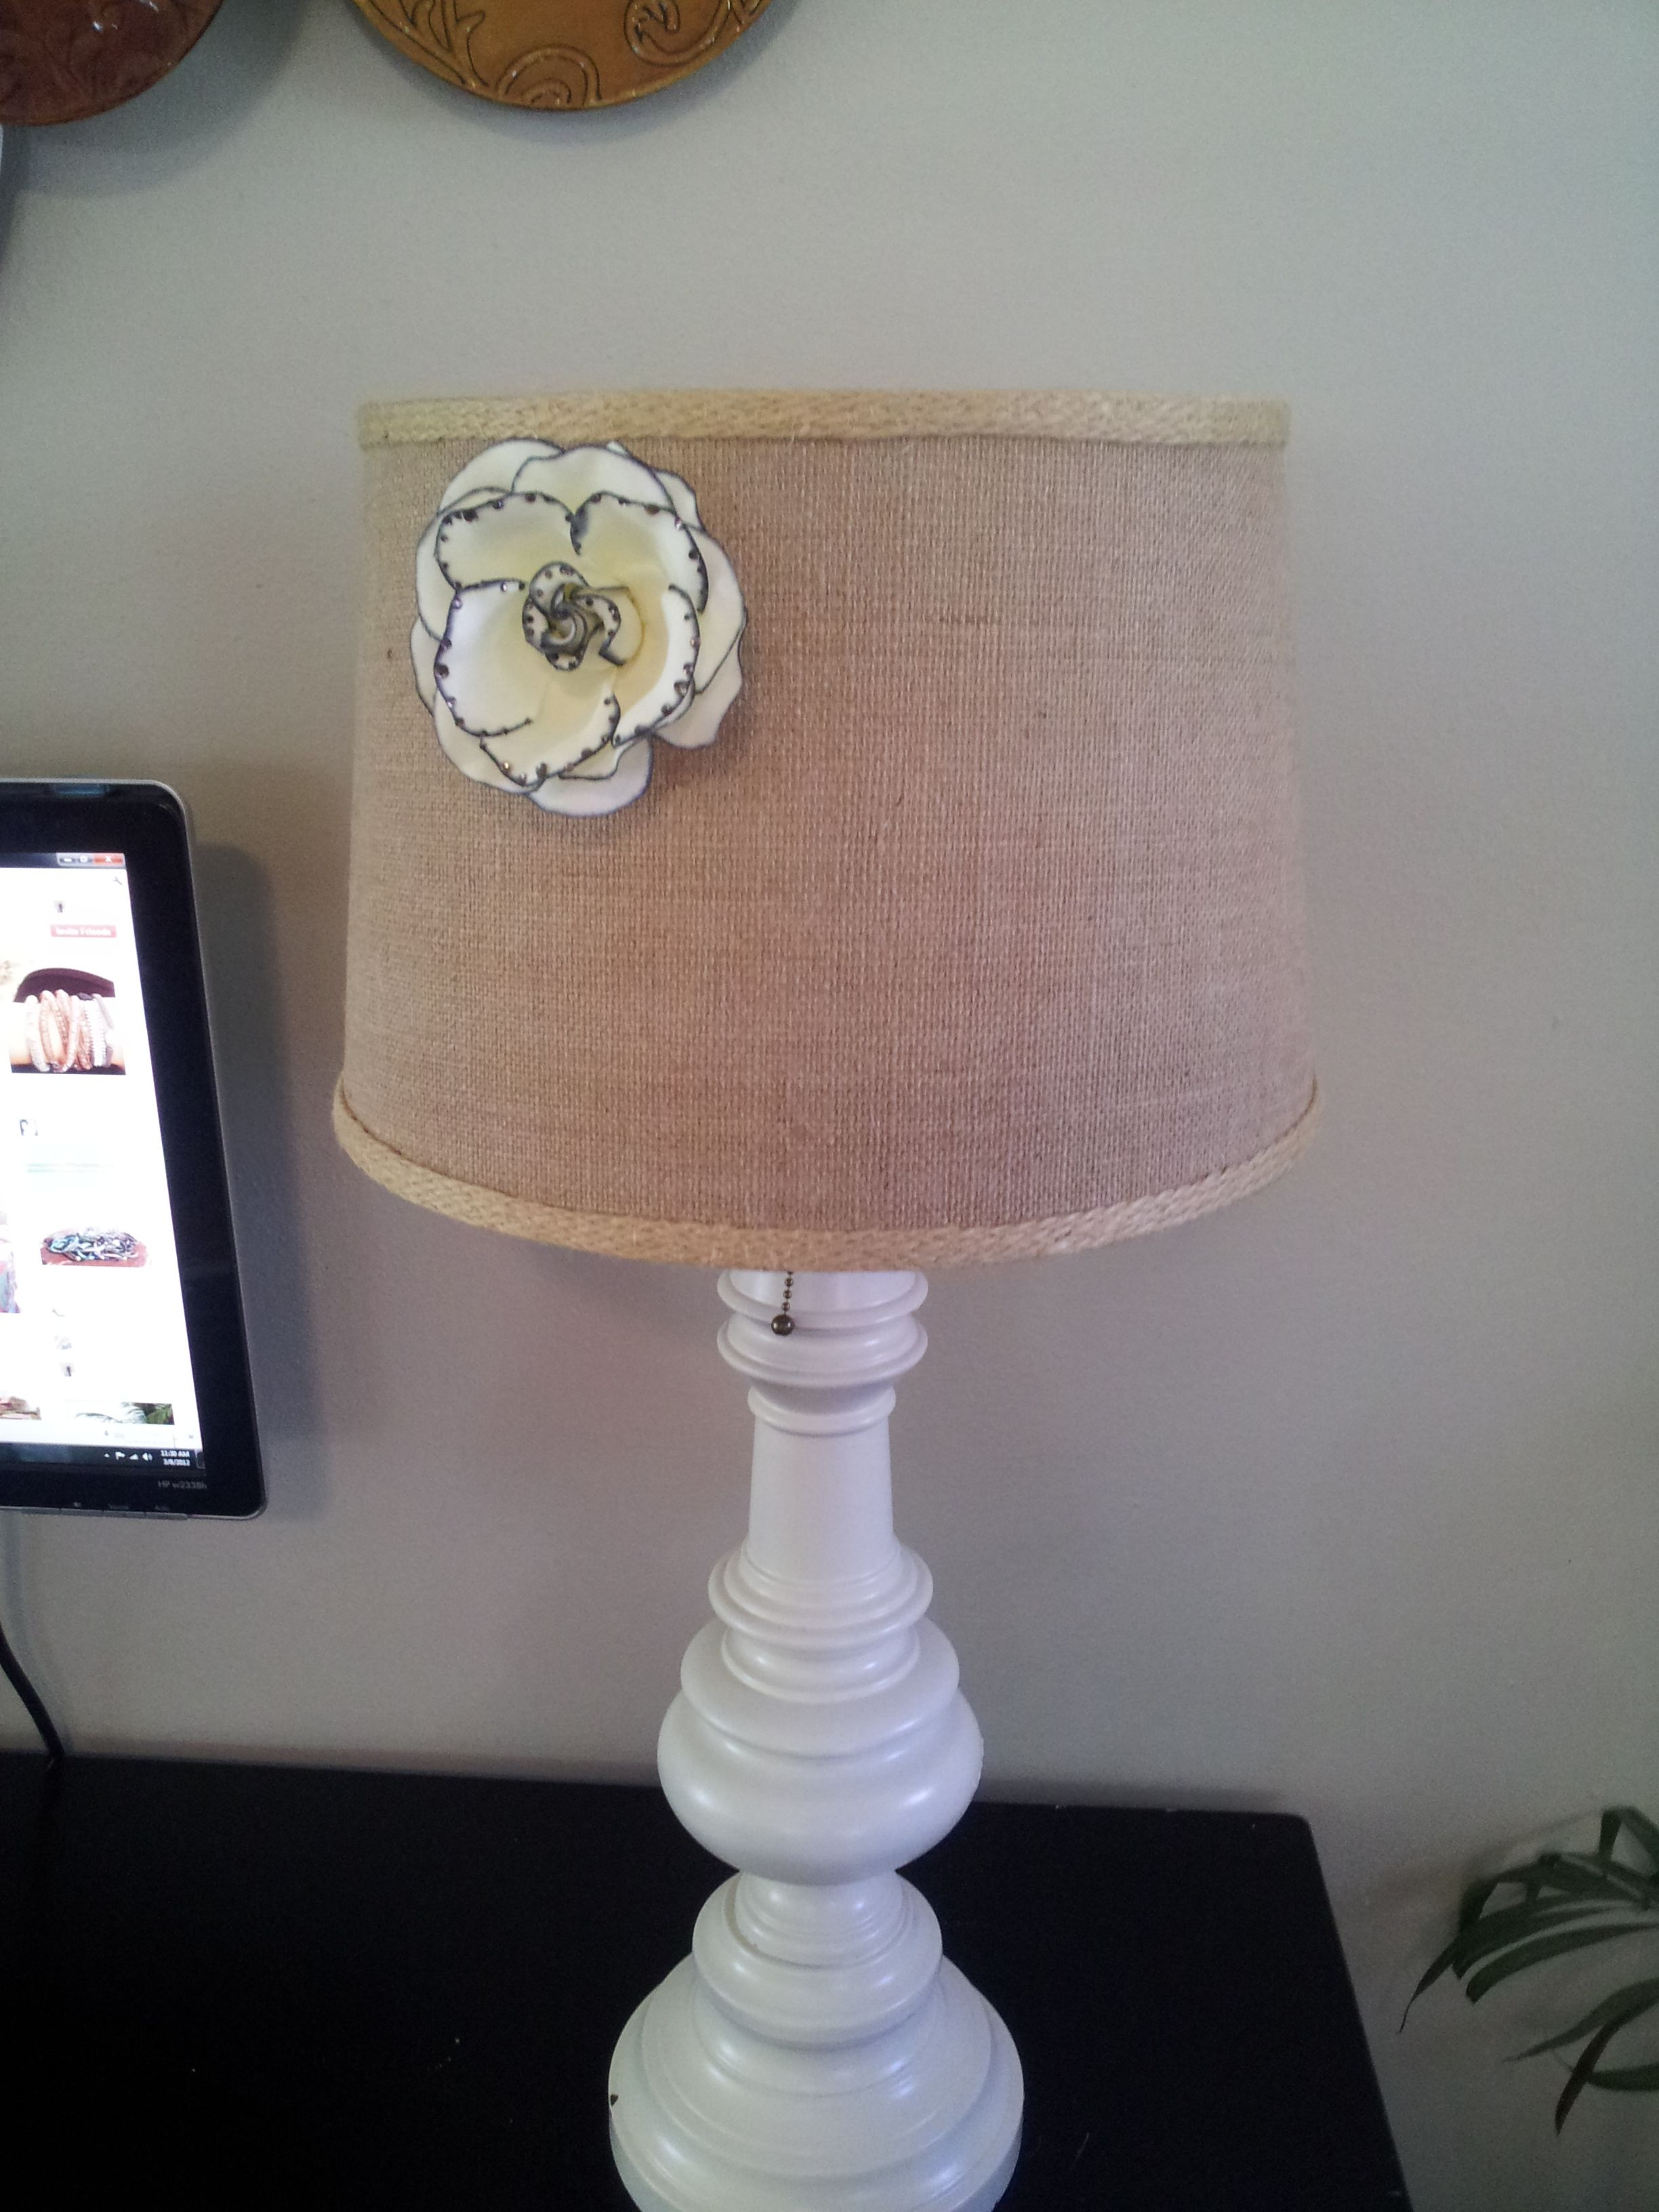 Hobby Lobby Lamp Shades Glamorous Took A Cute Flower Barrette I Found At Hobby Lobby And Hot Glued It Inspiration